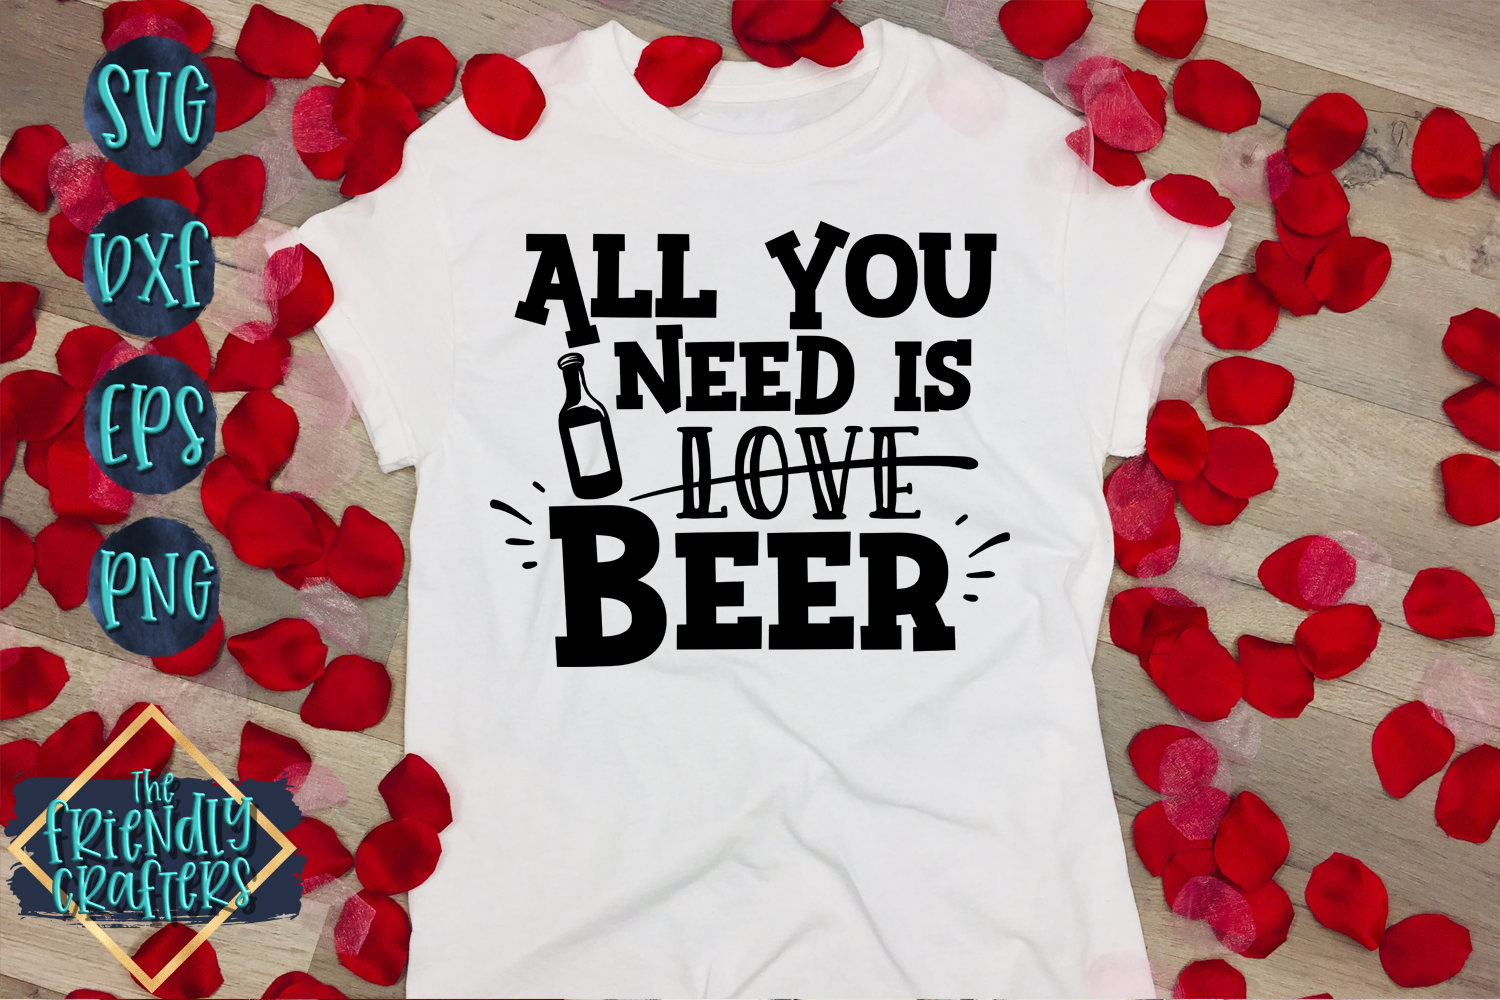 All You Need Is Beer example image 2